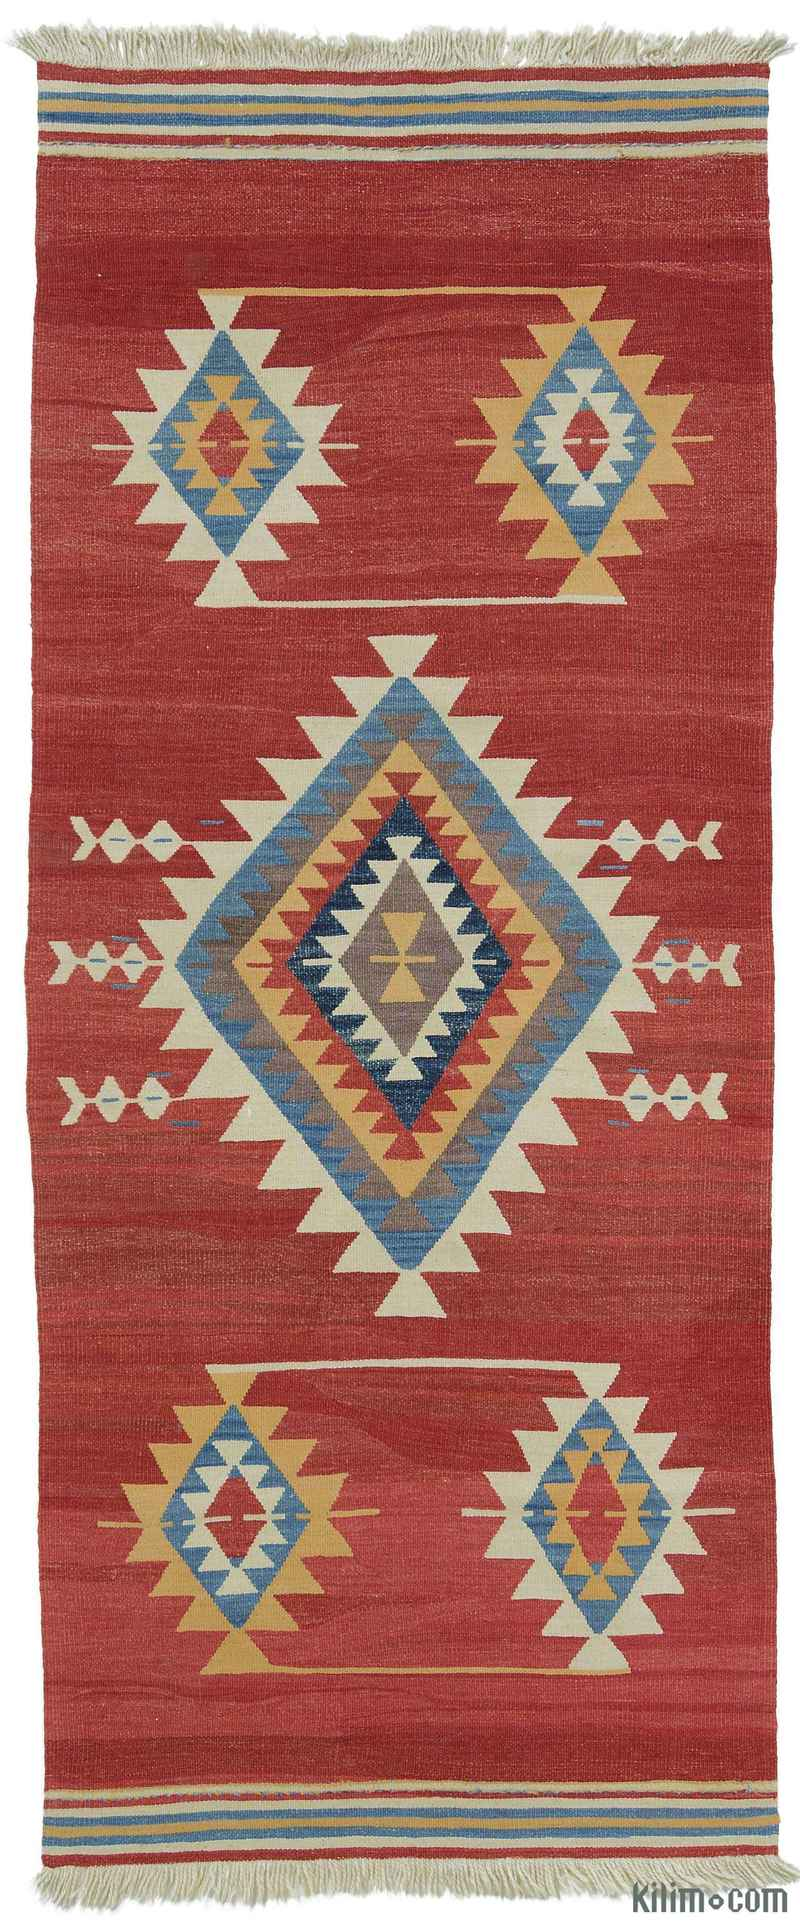 k0004367 red new turkish kilim runner. Black Bedroom Furniture Sets. Home Design Ideas